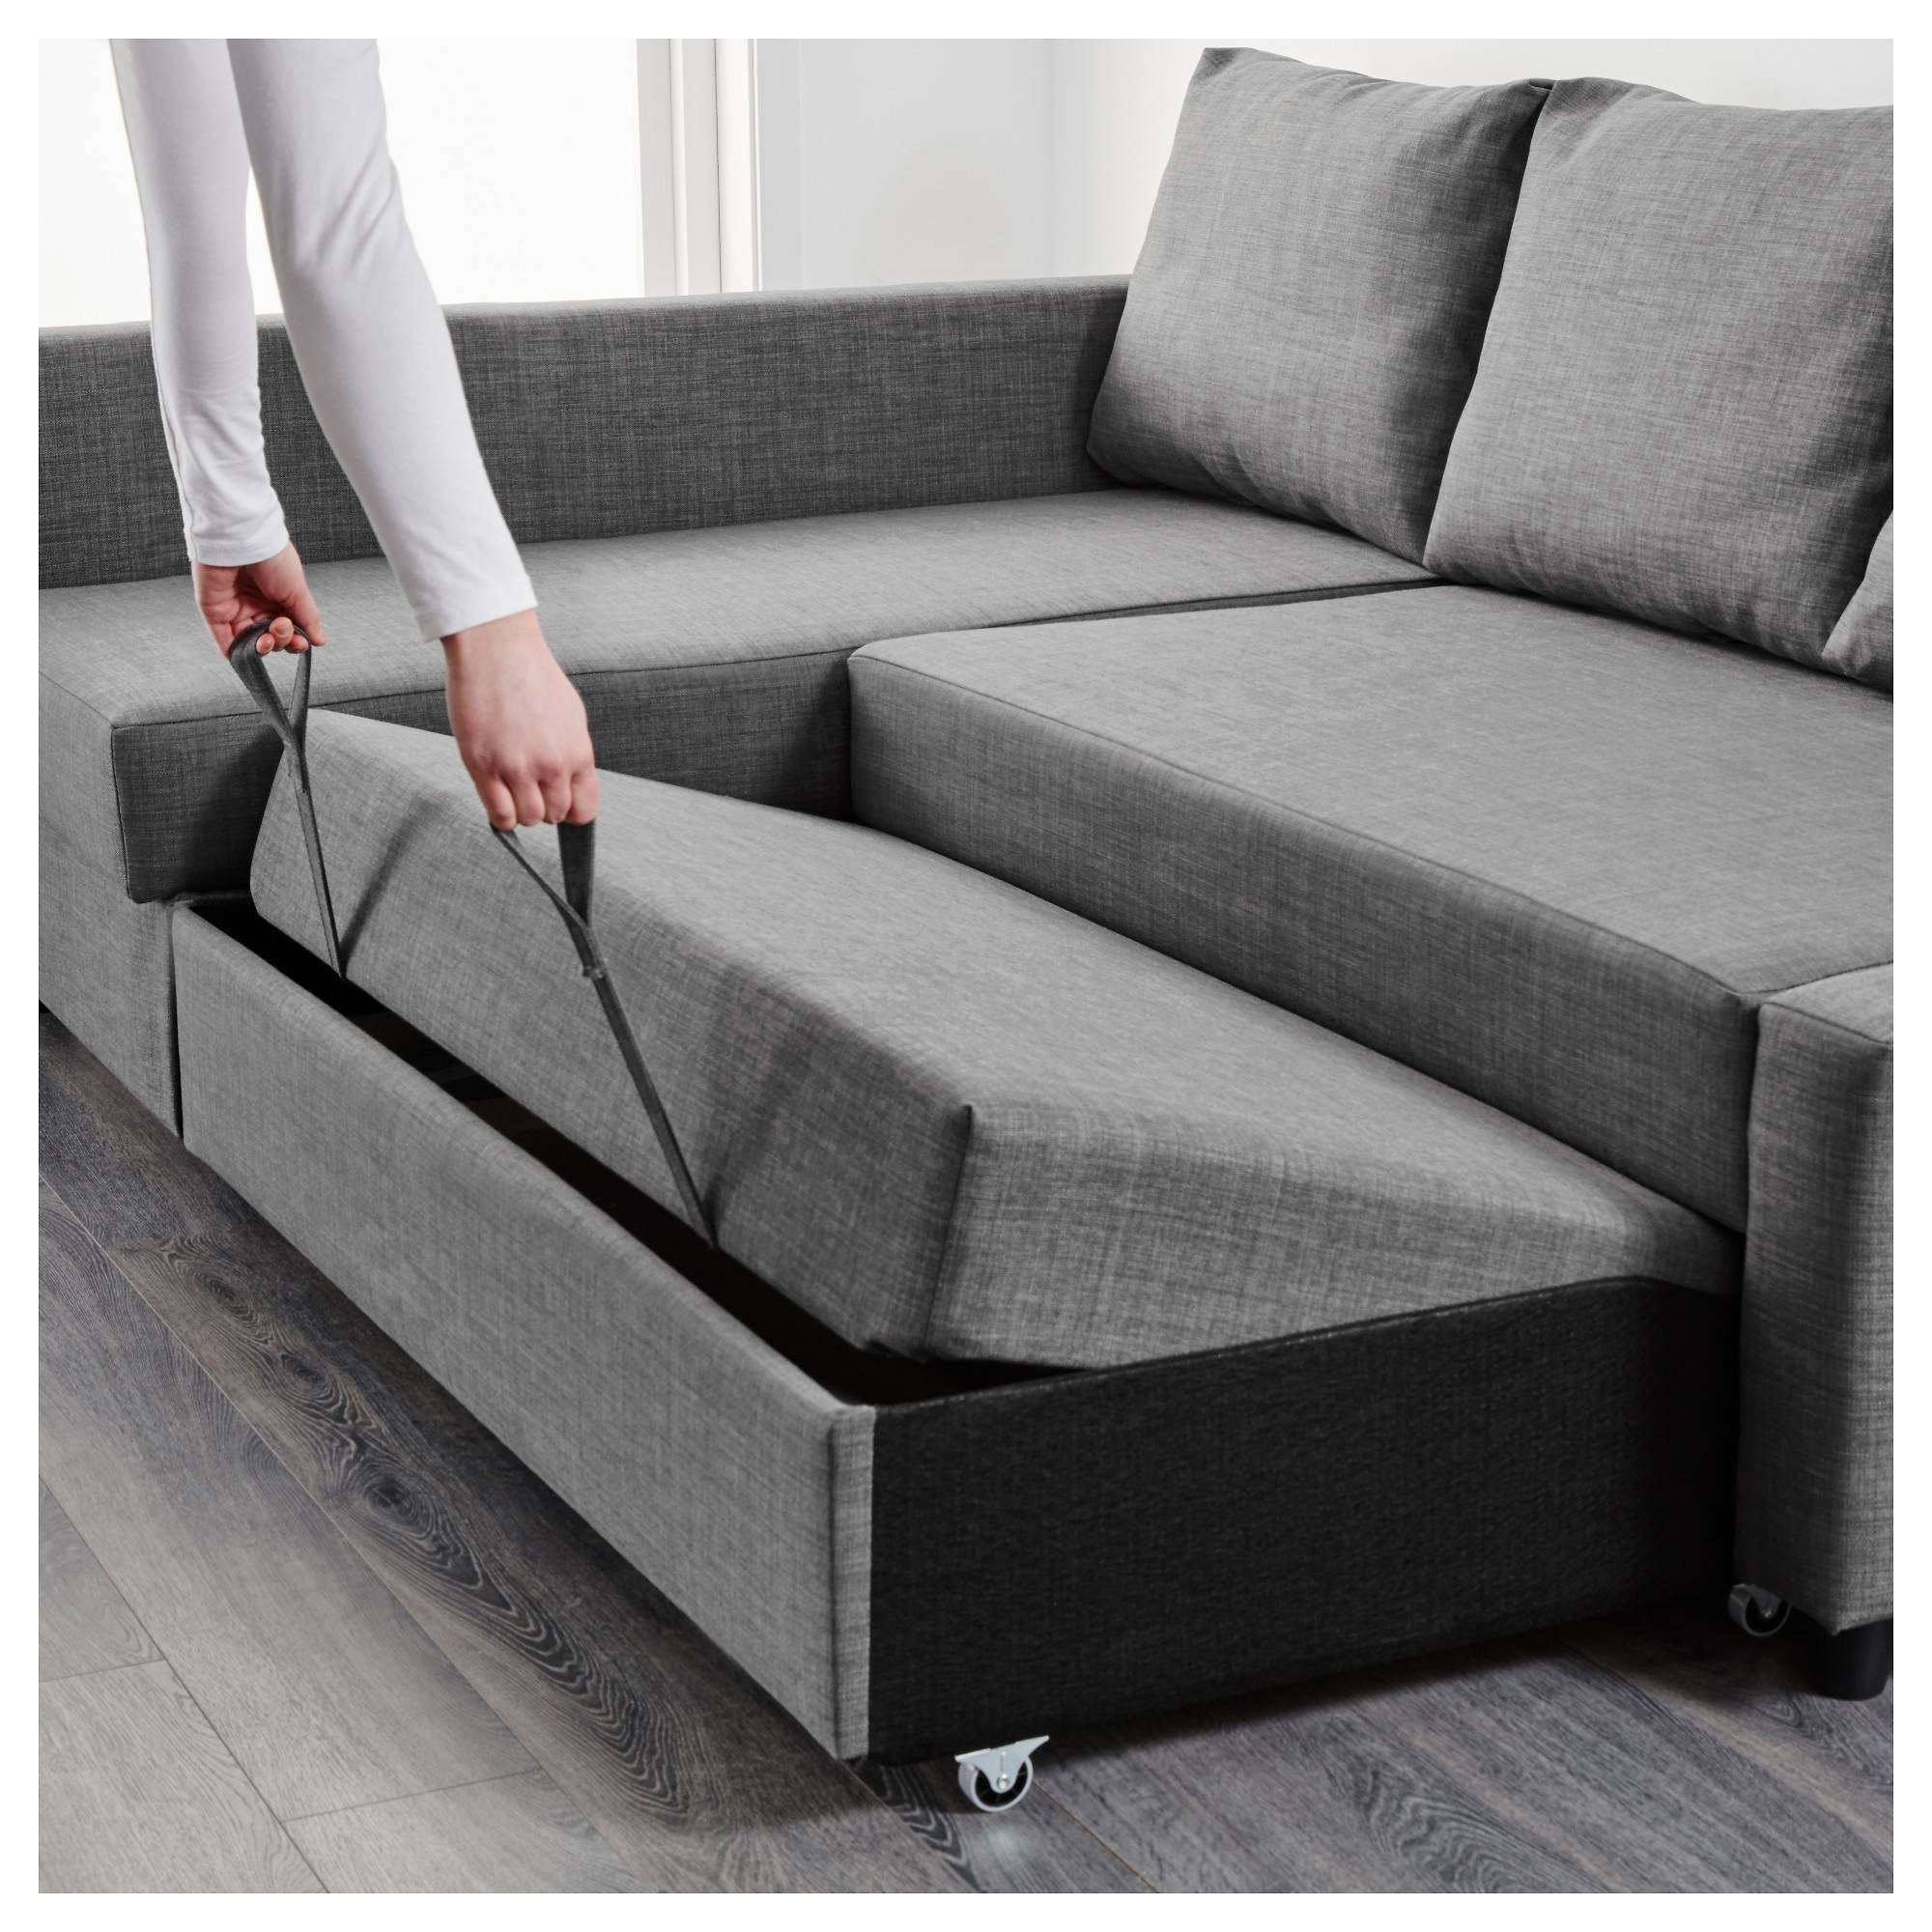 Friheten Corner Sofa-Bed With Storage Skiftebo Dark Grey - Ikea intended for Corner Sofa Bed With Storage Ikea (Image 11 of 30)